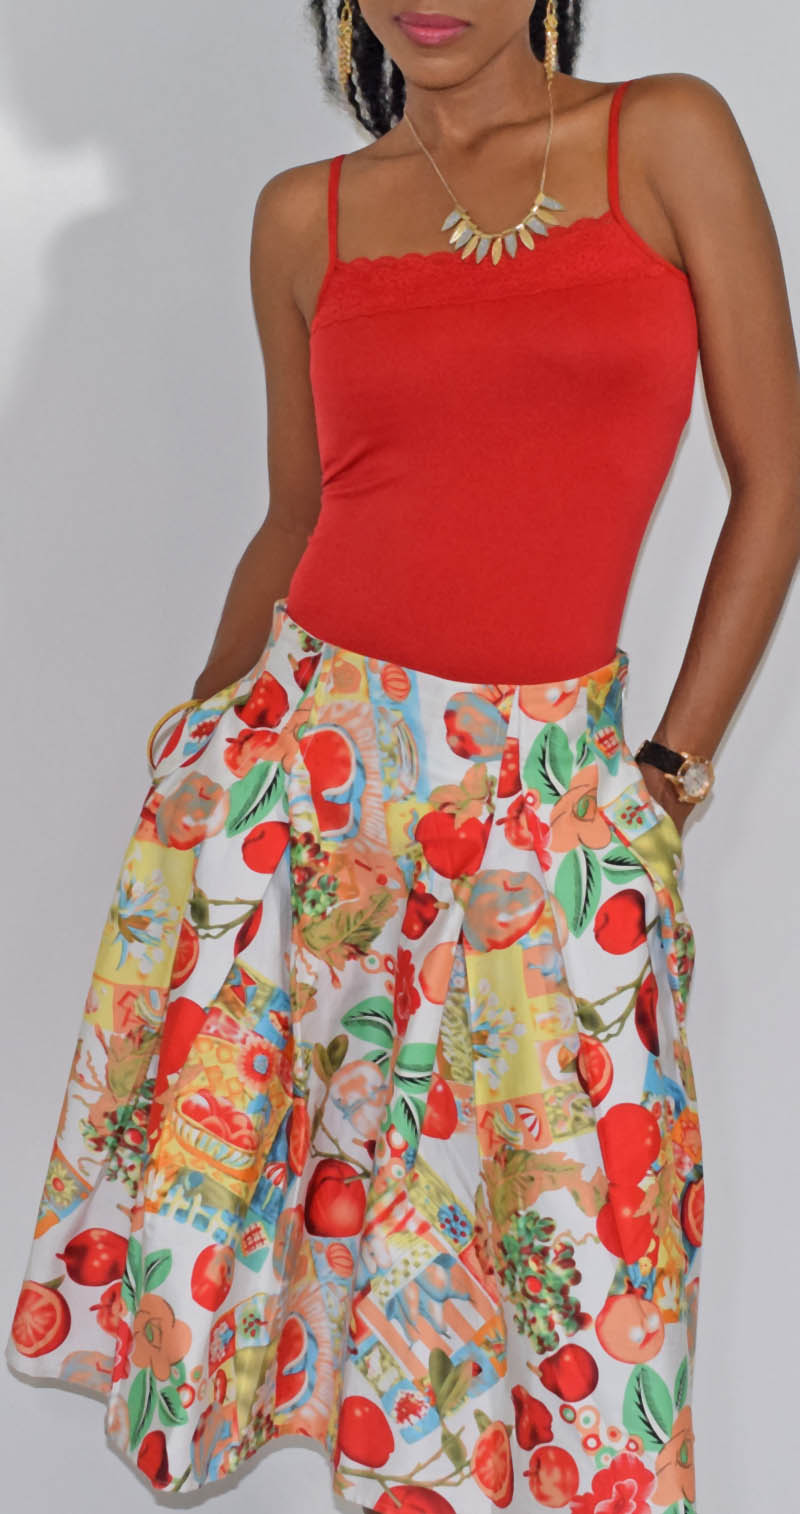 Grace Karin apples pomegranates fruits and flowers print skater skirt red lace detail tank top 2